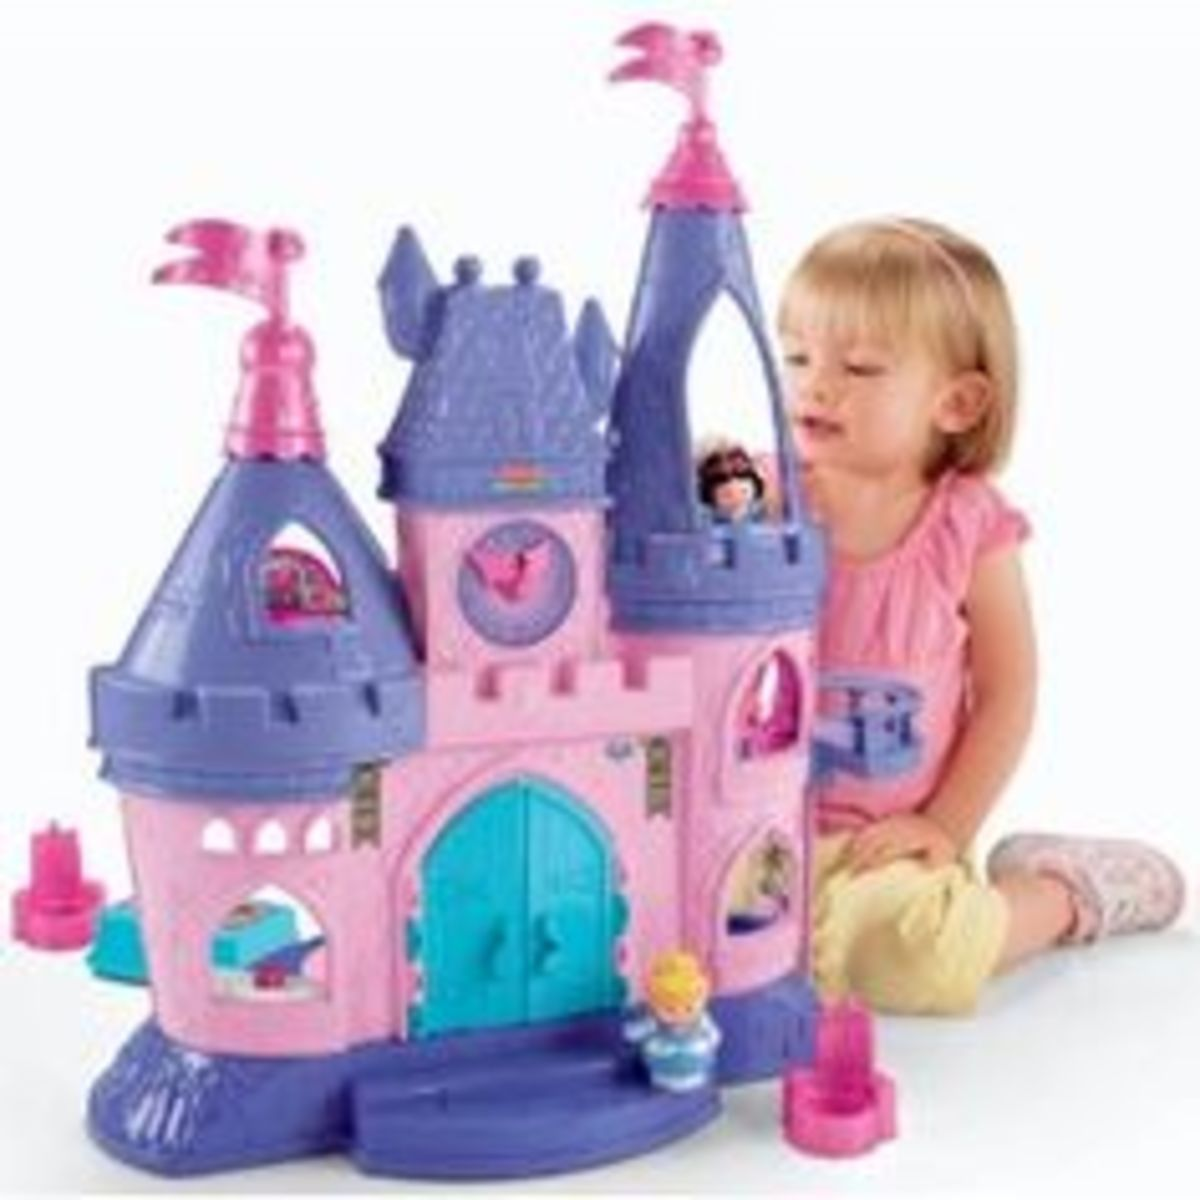 Headline for Best Christmas Gift Ideas For A 2 Year Old Baby Girl - Reviews & Ratings 2016